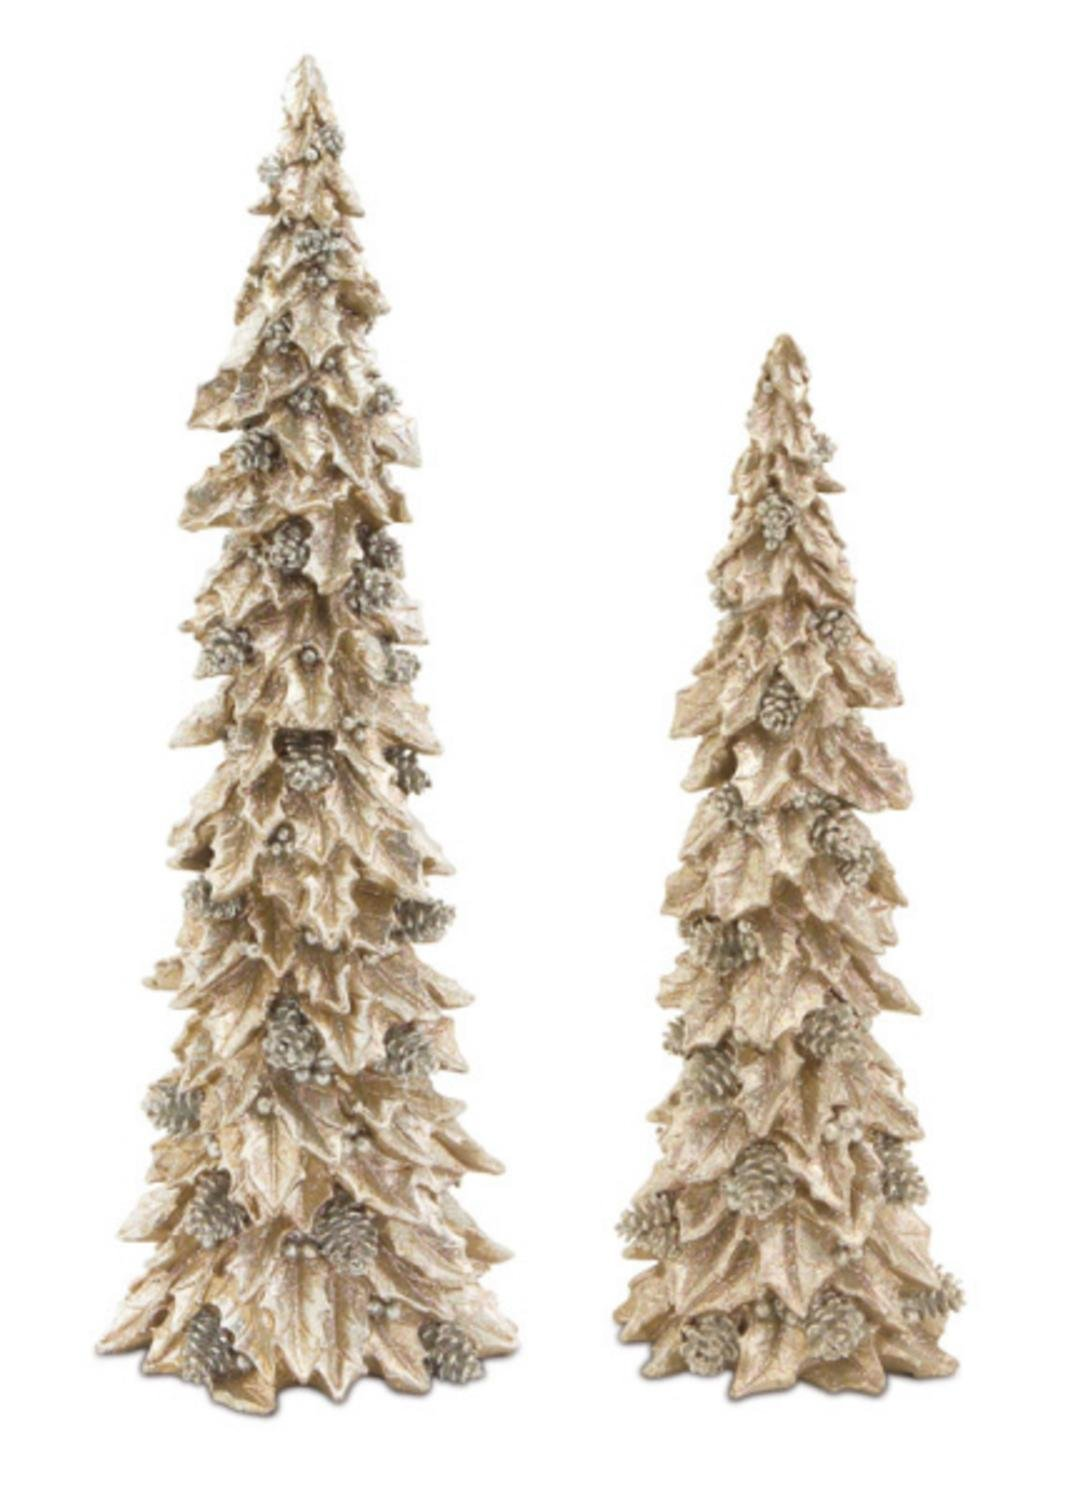 amazoncom pack of 2 glittered gold and silver holly trees with pine cones table top christmas decorations 19 home kitchen